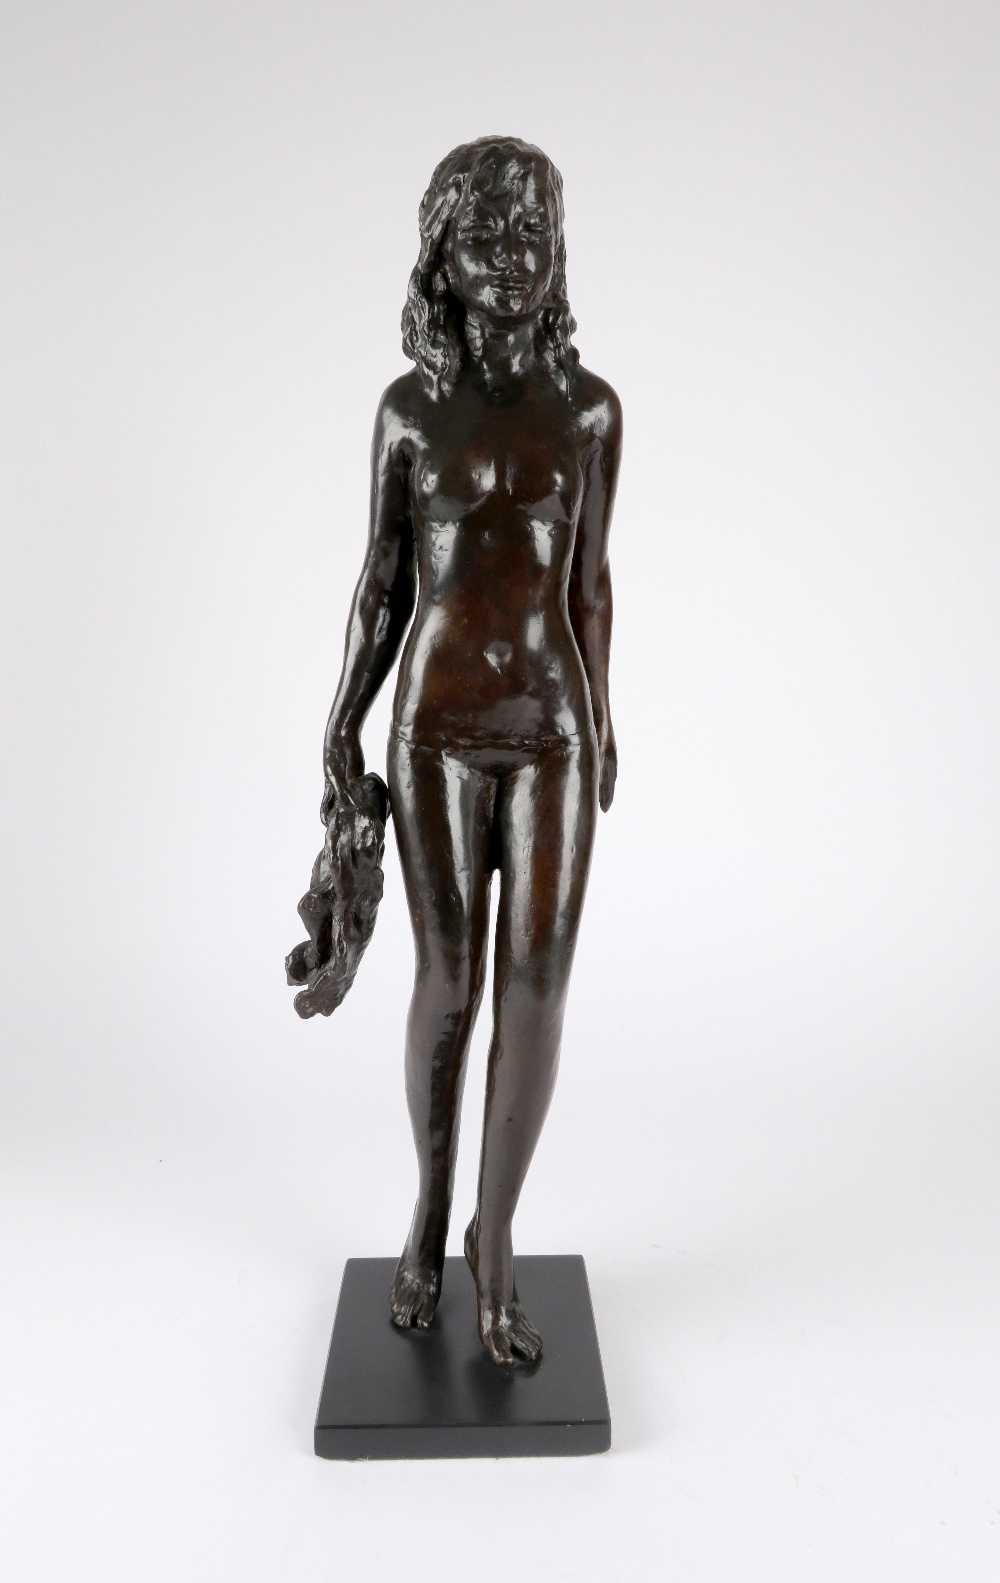 ‡Sydney Harpley RA, FRBS (1927-1992) Towel girl Signed and numbered Harpley/2/9 (to towel) Bronze on